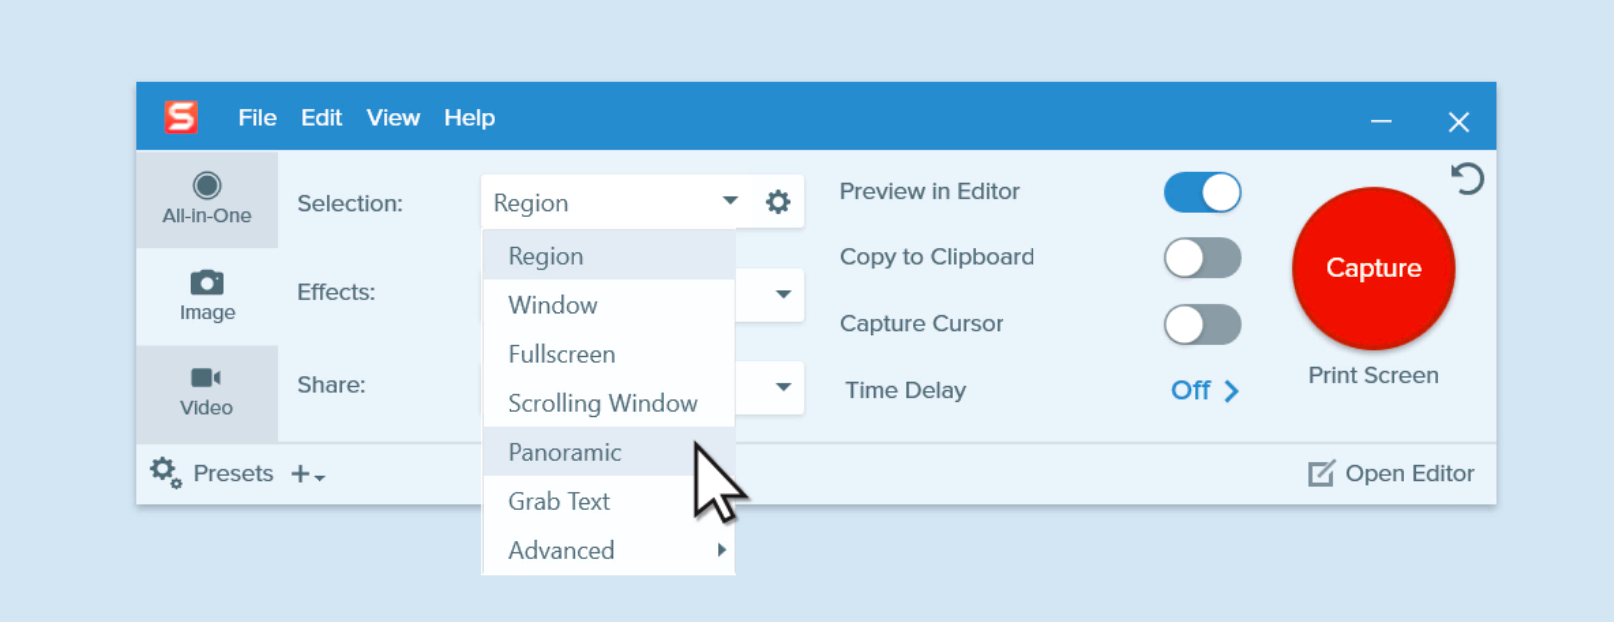 The Snagit capture window with the image tab selected and the panoramic option selected from the Selection dropdown